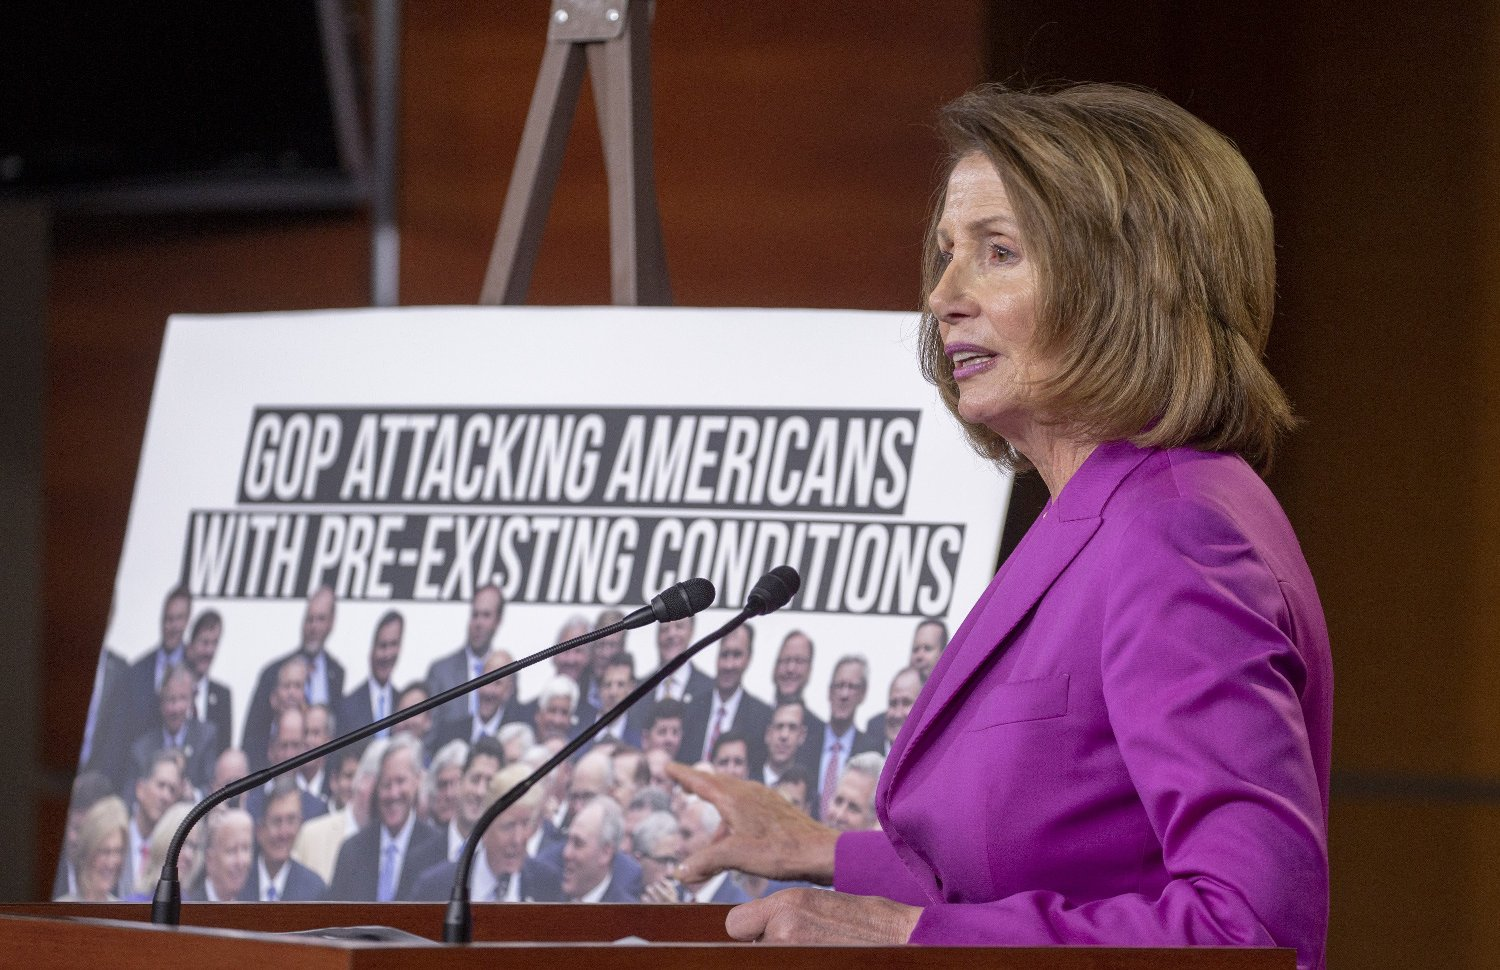 Minority Leader Nancy Pelosi speaks during her weekly press conference on June 21, 2018 on Capital Hill in Washington, DC  Photo by /UPI, Image: 375628301, License: Rights-managed, Restrictions: , Model Release: no, Credit line: Profimedia, UPI